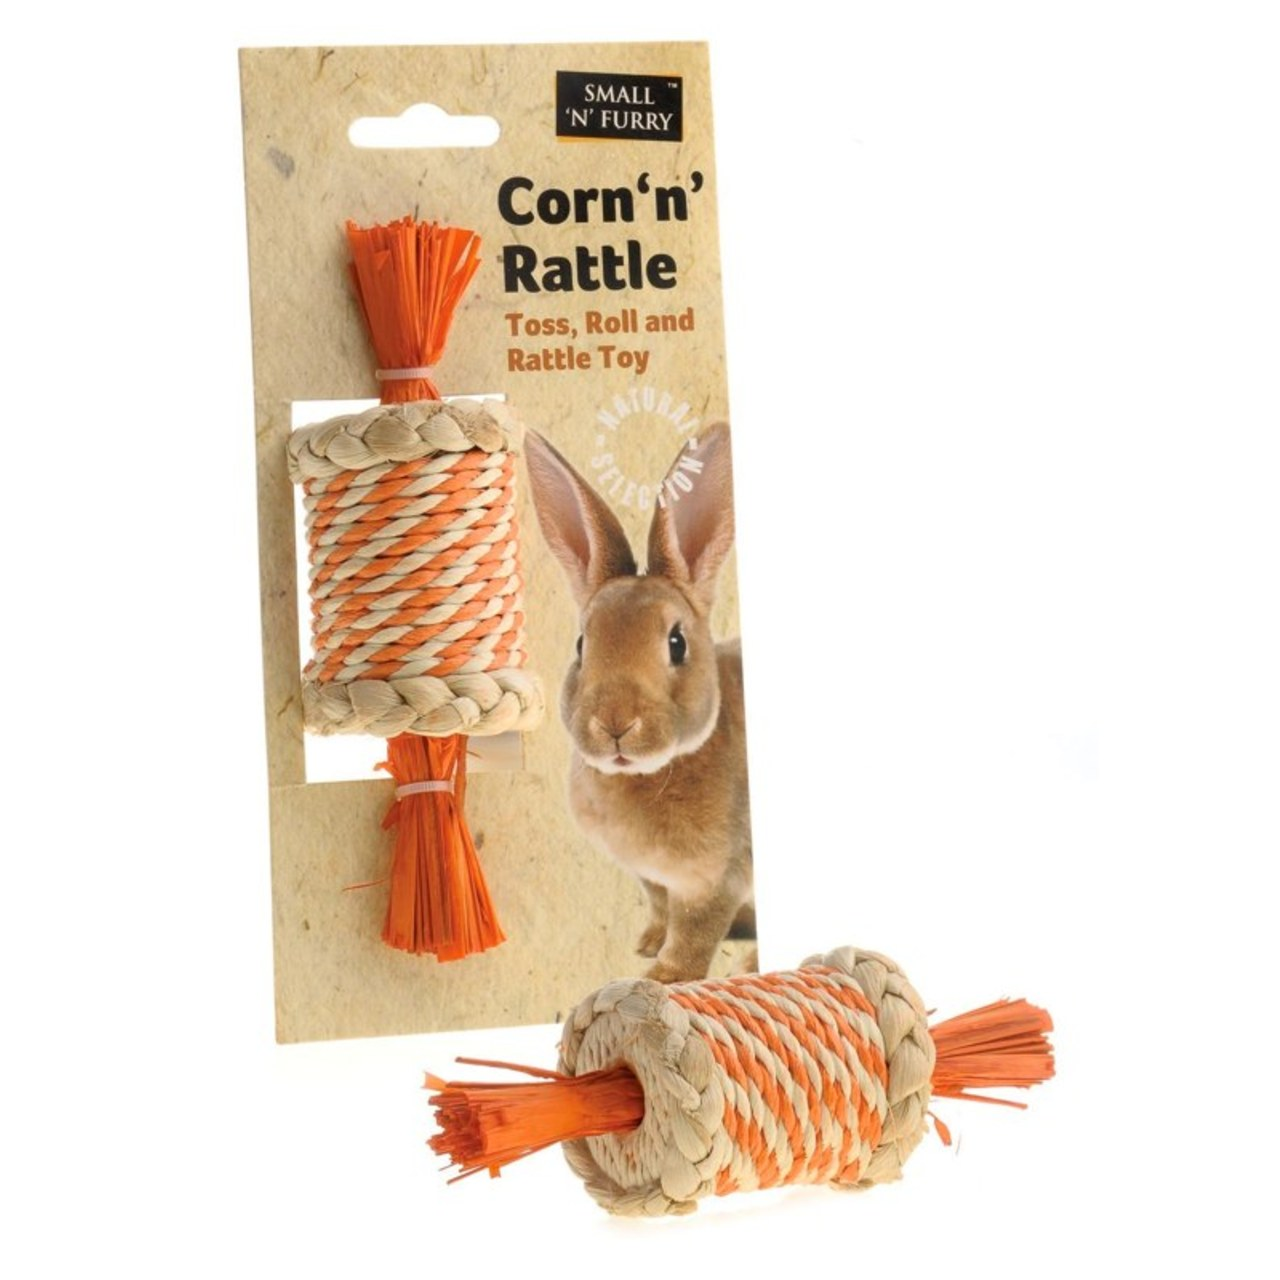 Small 'N' Fluffy Corn 'n' Rattle Small Animal Chew